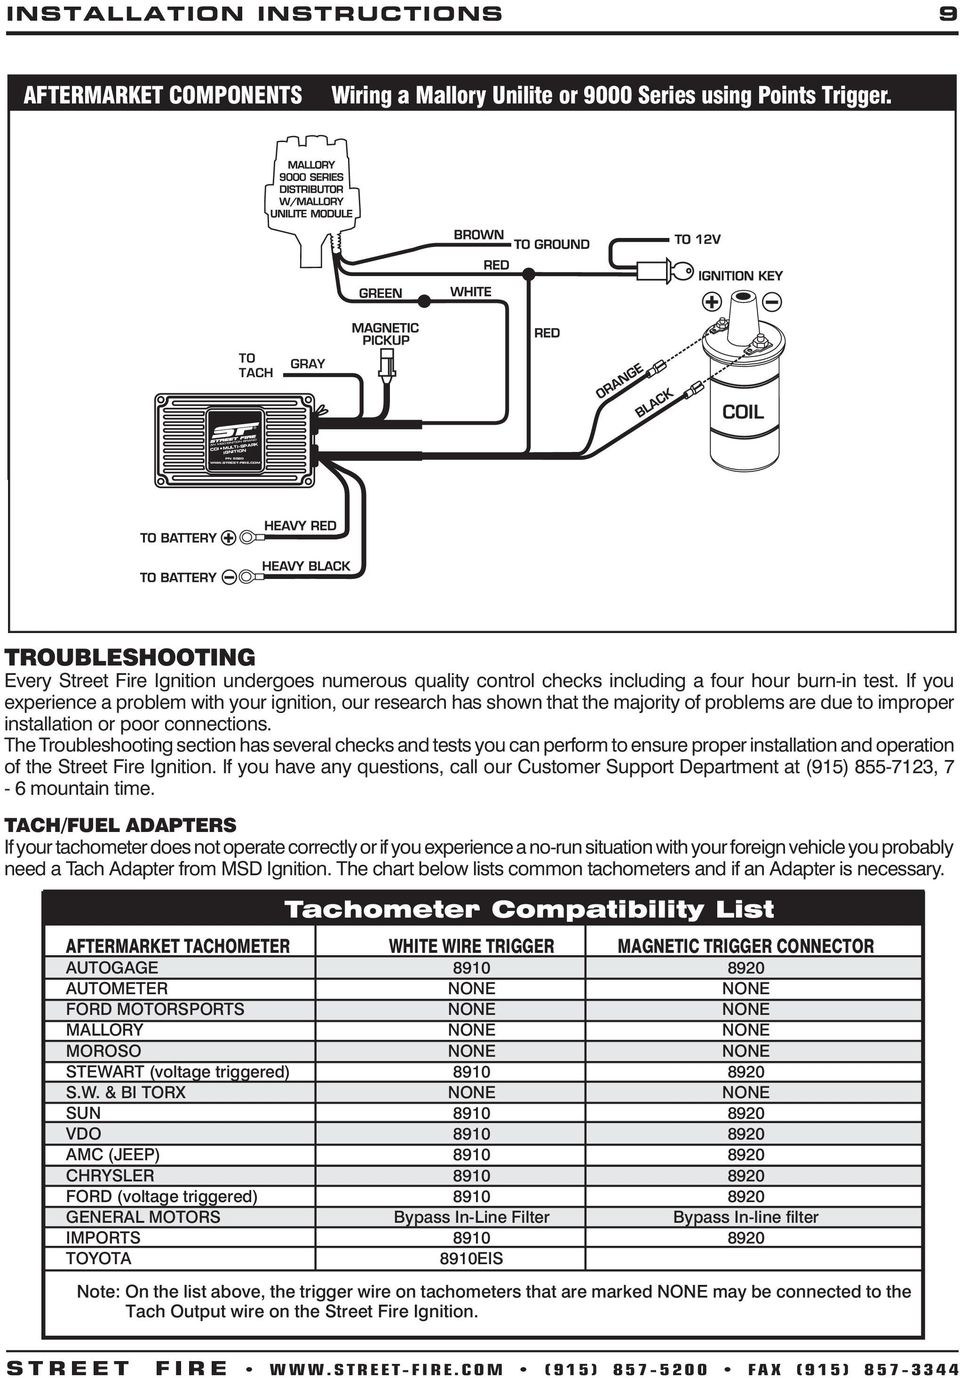 medium resolution of streetfire 5520 wiring diagram wiring diagram show msd 5520 ignition wiring diagram